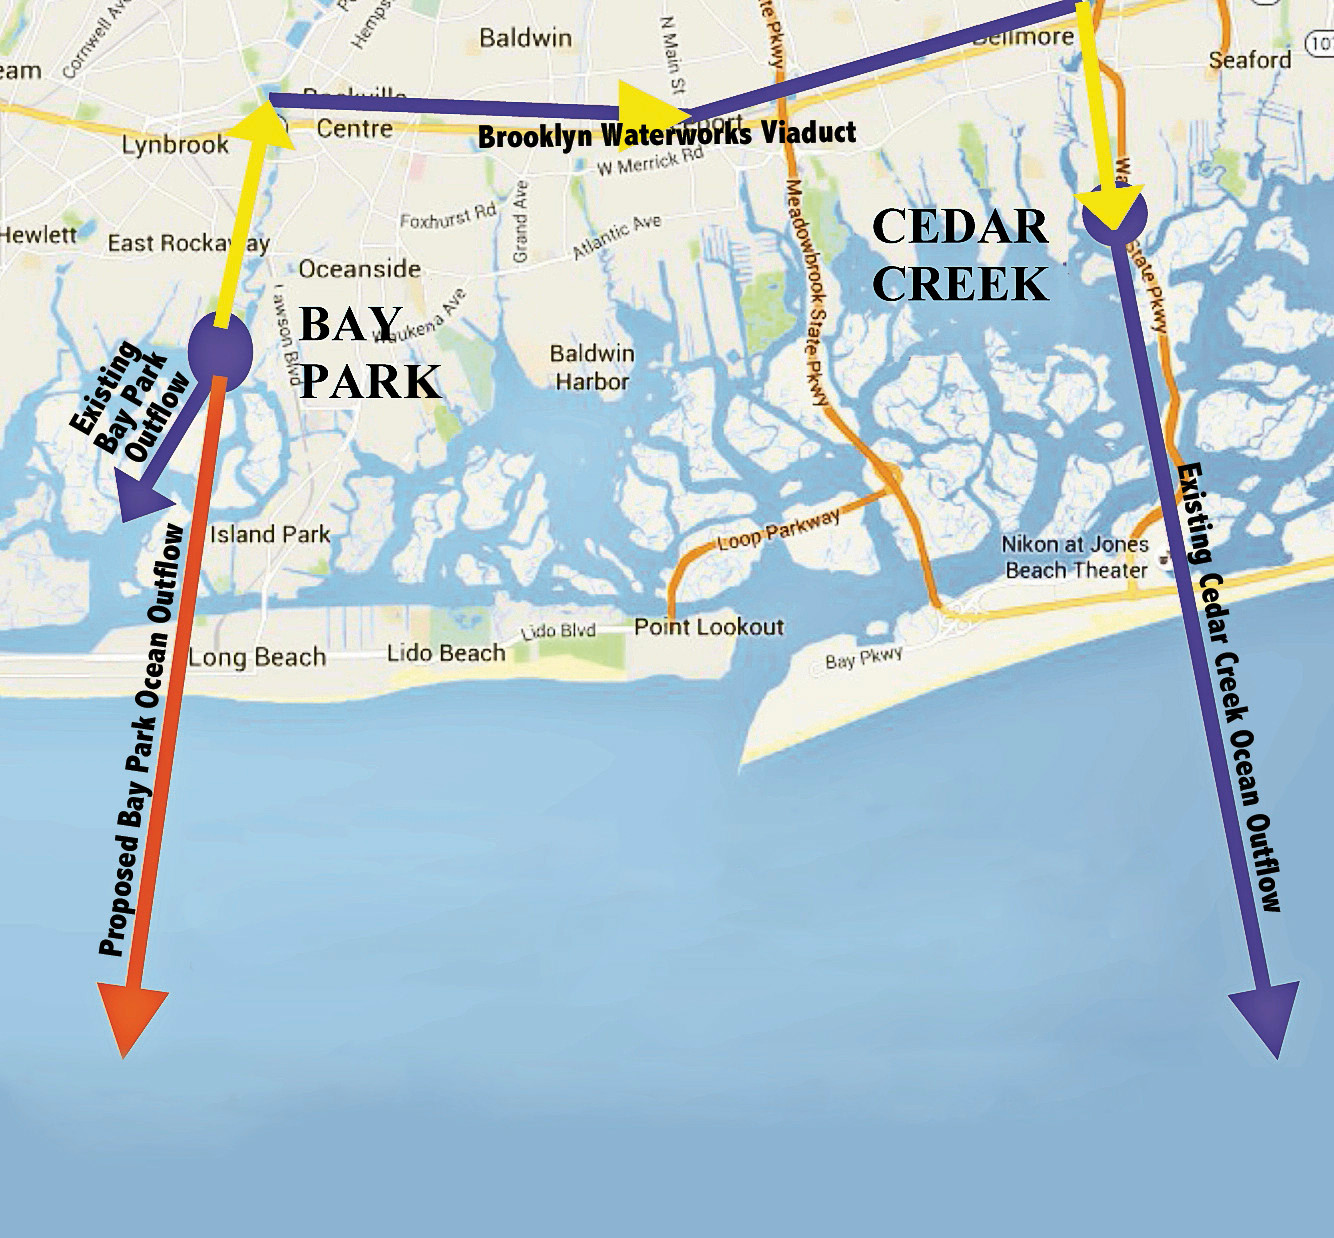 If the pipe under study is usable, it will carrying treated waste from Bay Park to Cedar Creek's outfall pipe near the Wantagh-Seaford border.